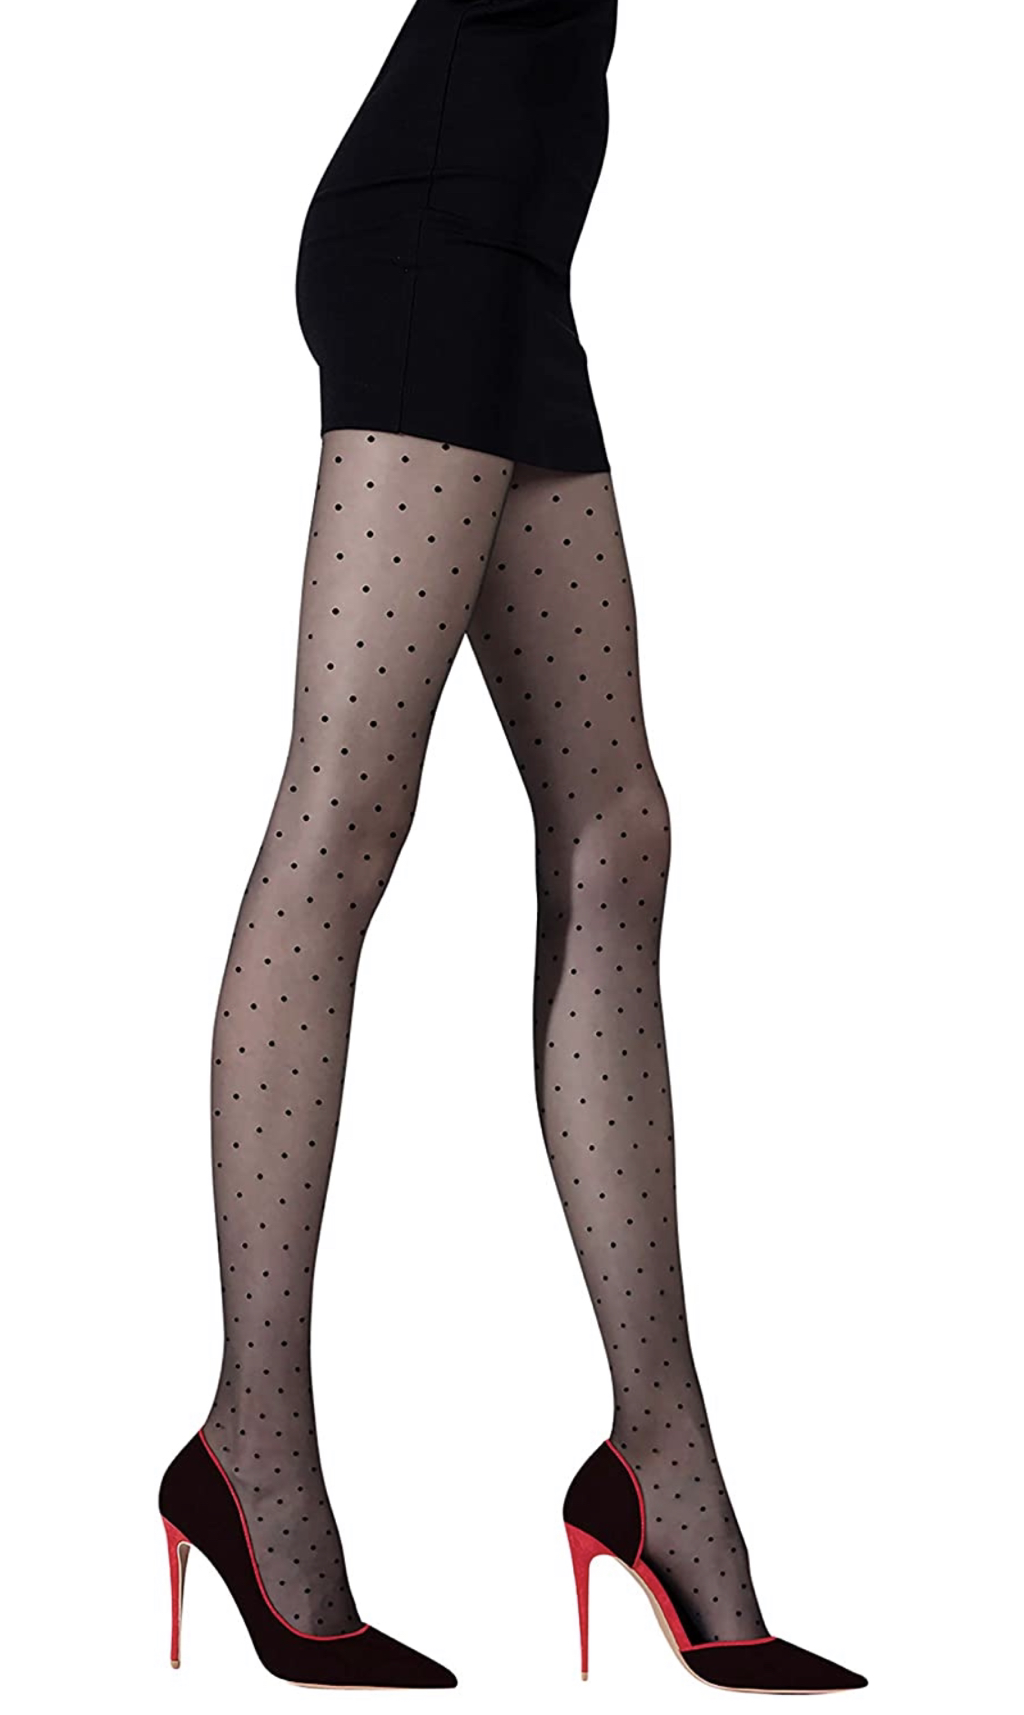 bb9d9a0c59e4d FOREVER 21 SEMI-SHEER FISHNET TIGHTS - Fashion Tights